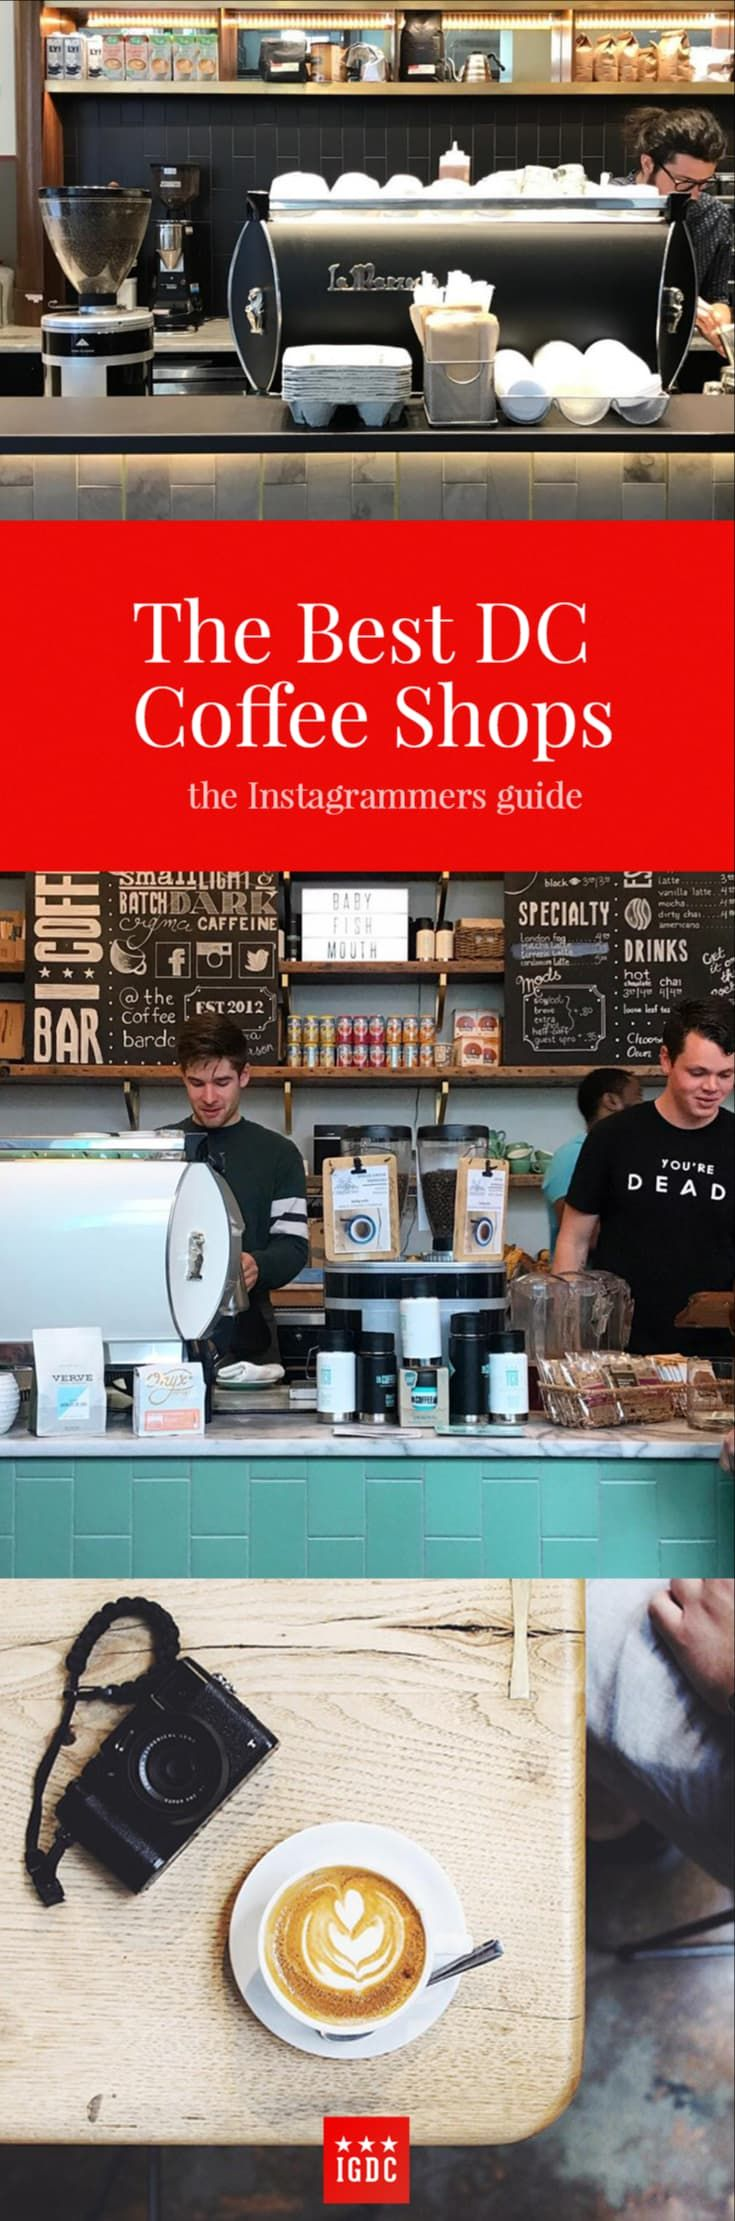 The Best Coffee Shops In Washington Dc For Instagrammers Igdc Best Coffee Shop Dc Coffee Shops Coffee Shop